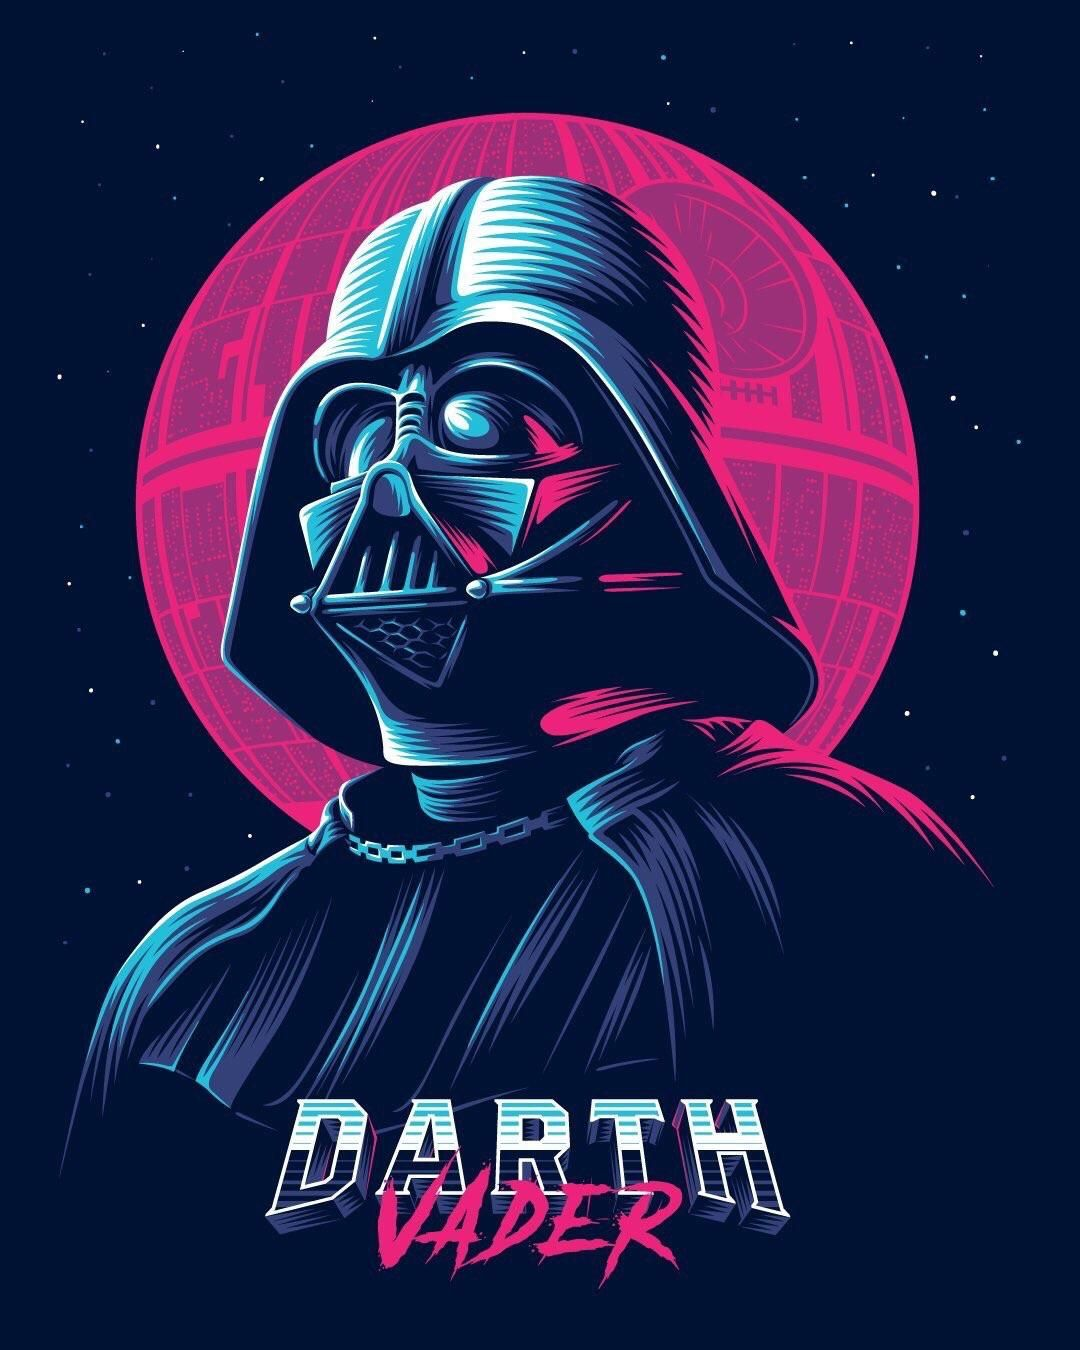 Sick Vader Pic For Anyone That Wants Starwars Slutsandguts Star Wars Illustration Star Wars Awesome Star Wars Poster